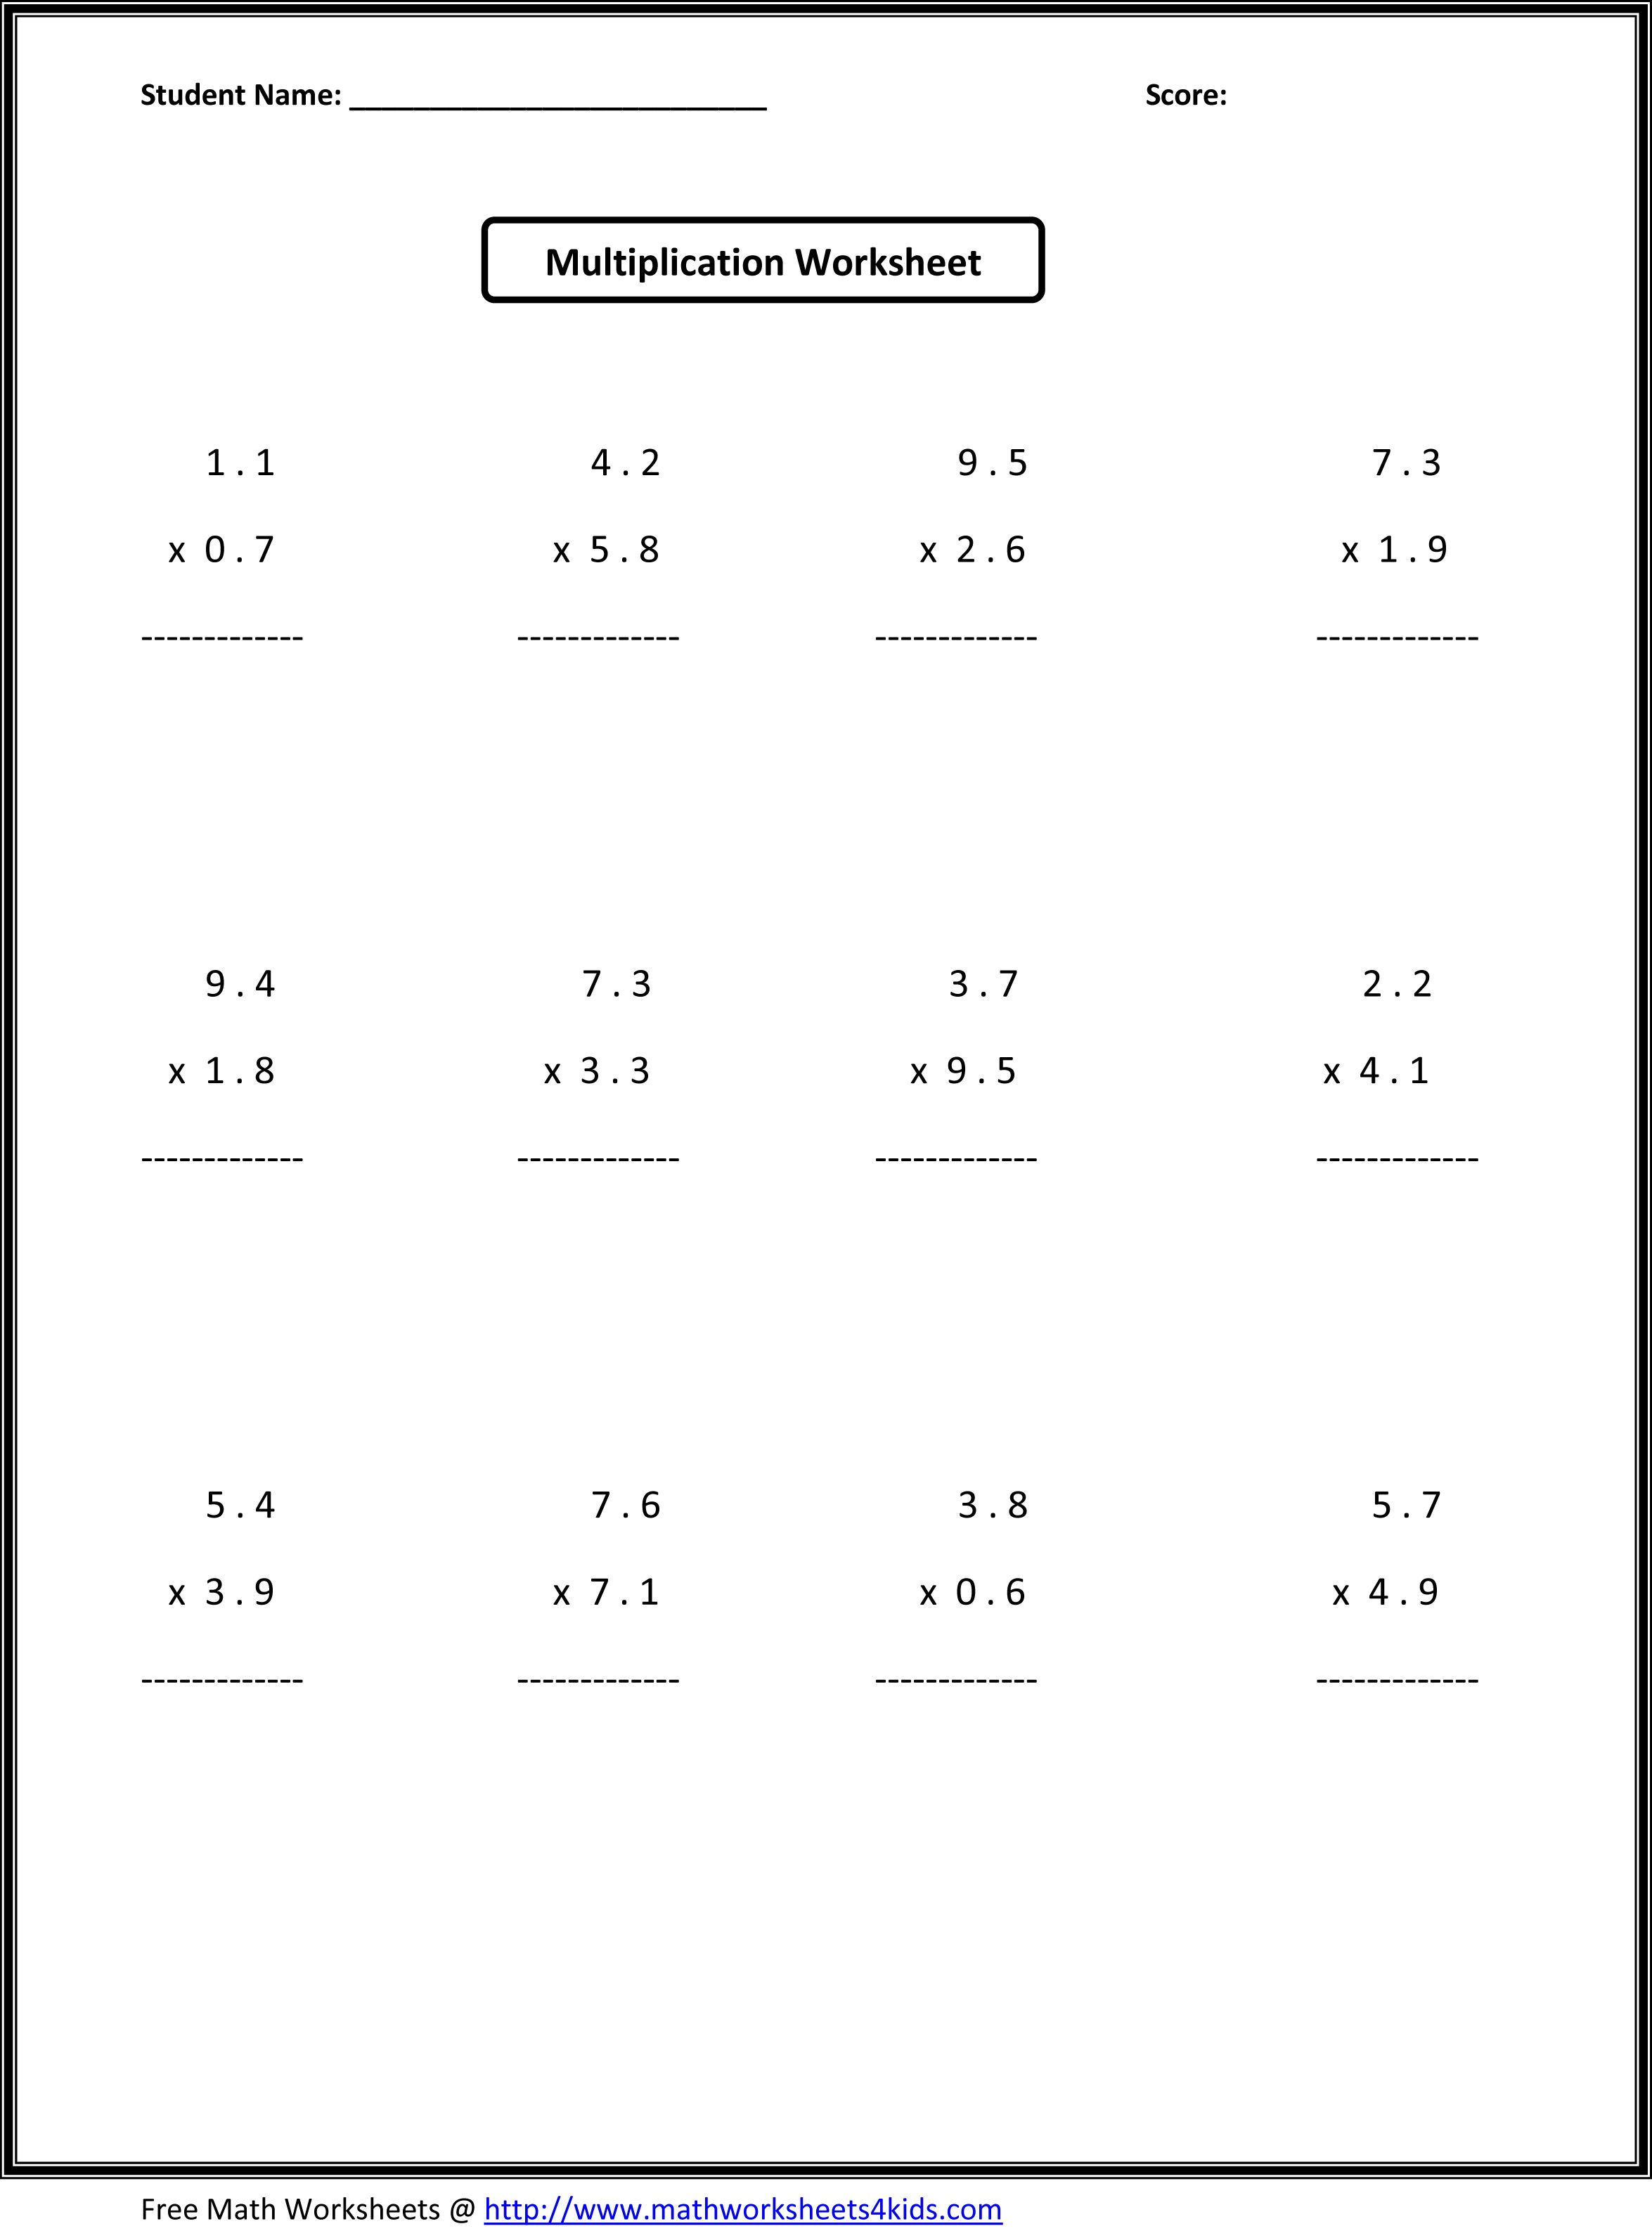 math worksheet : 1000 images about math on pinterest  7th grade math worksheets  : Answer Key Math Worksheets